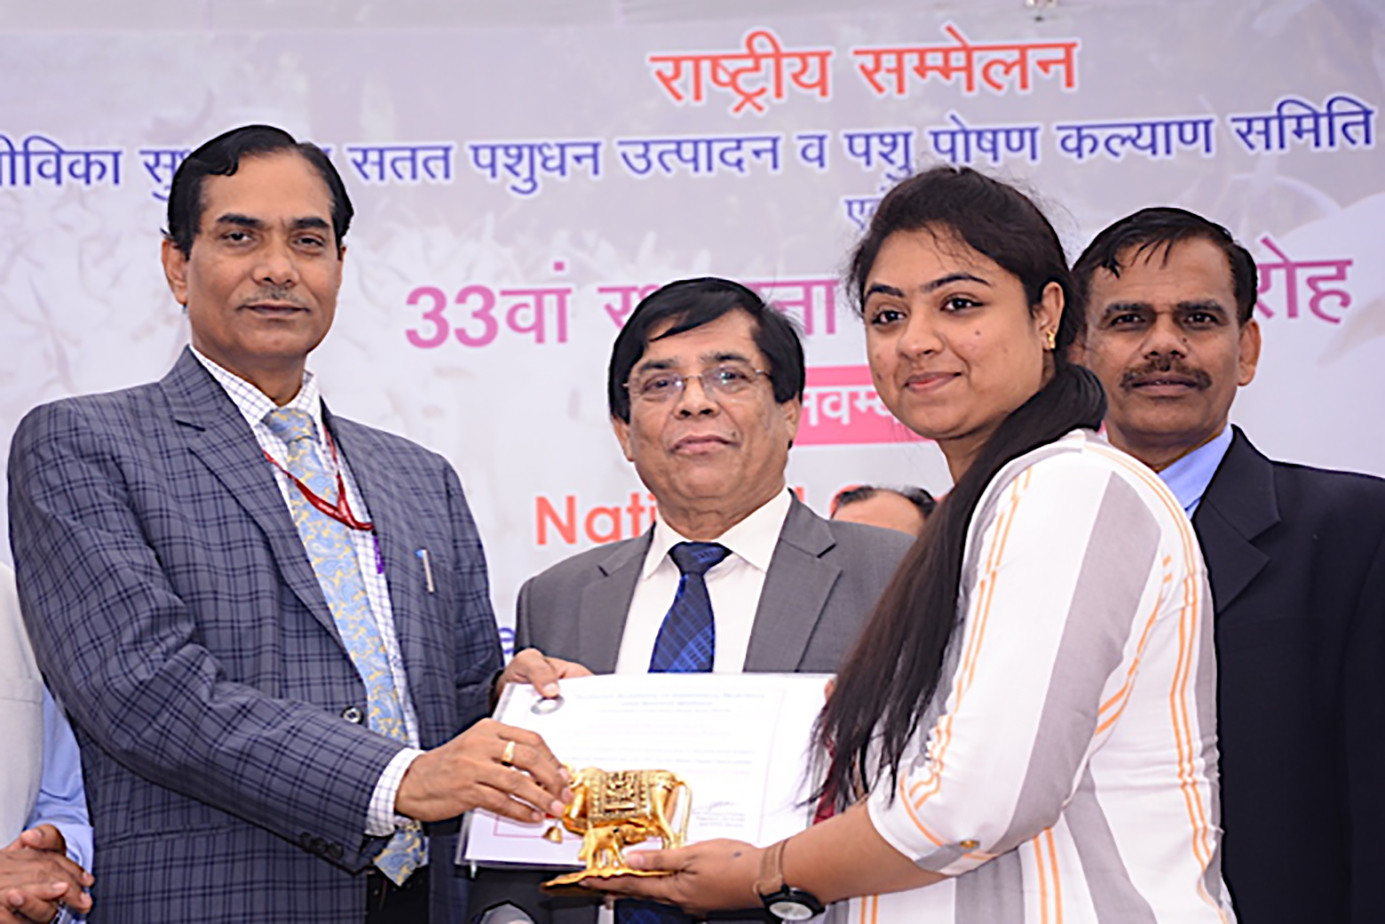 Vijayalakshmy Kennady receiving award